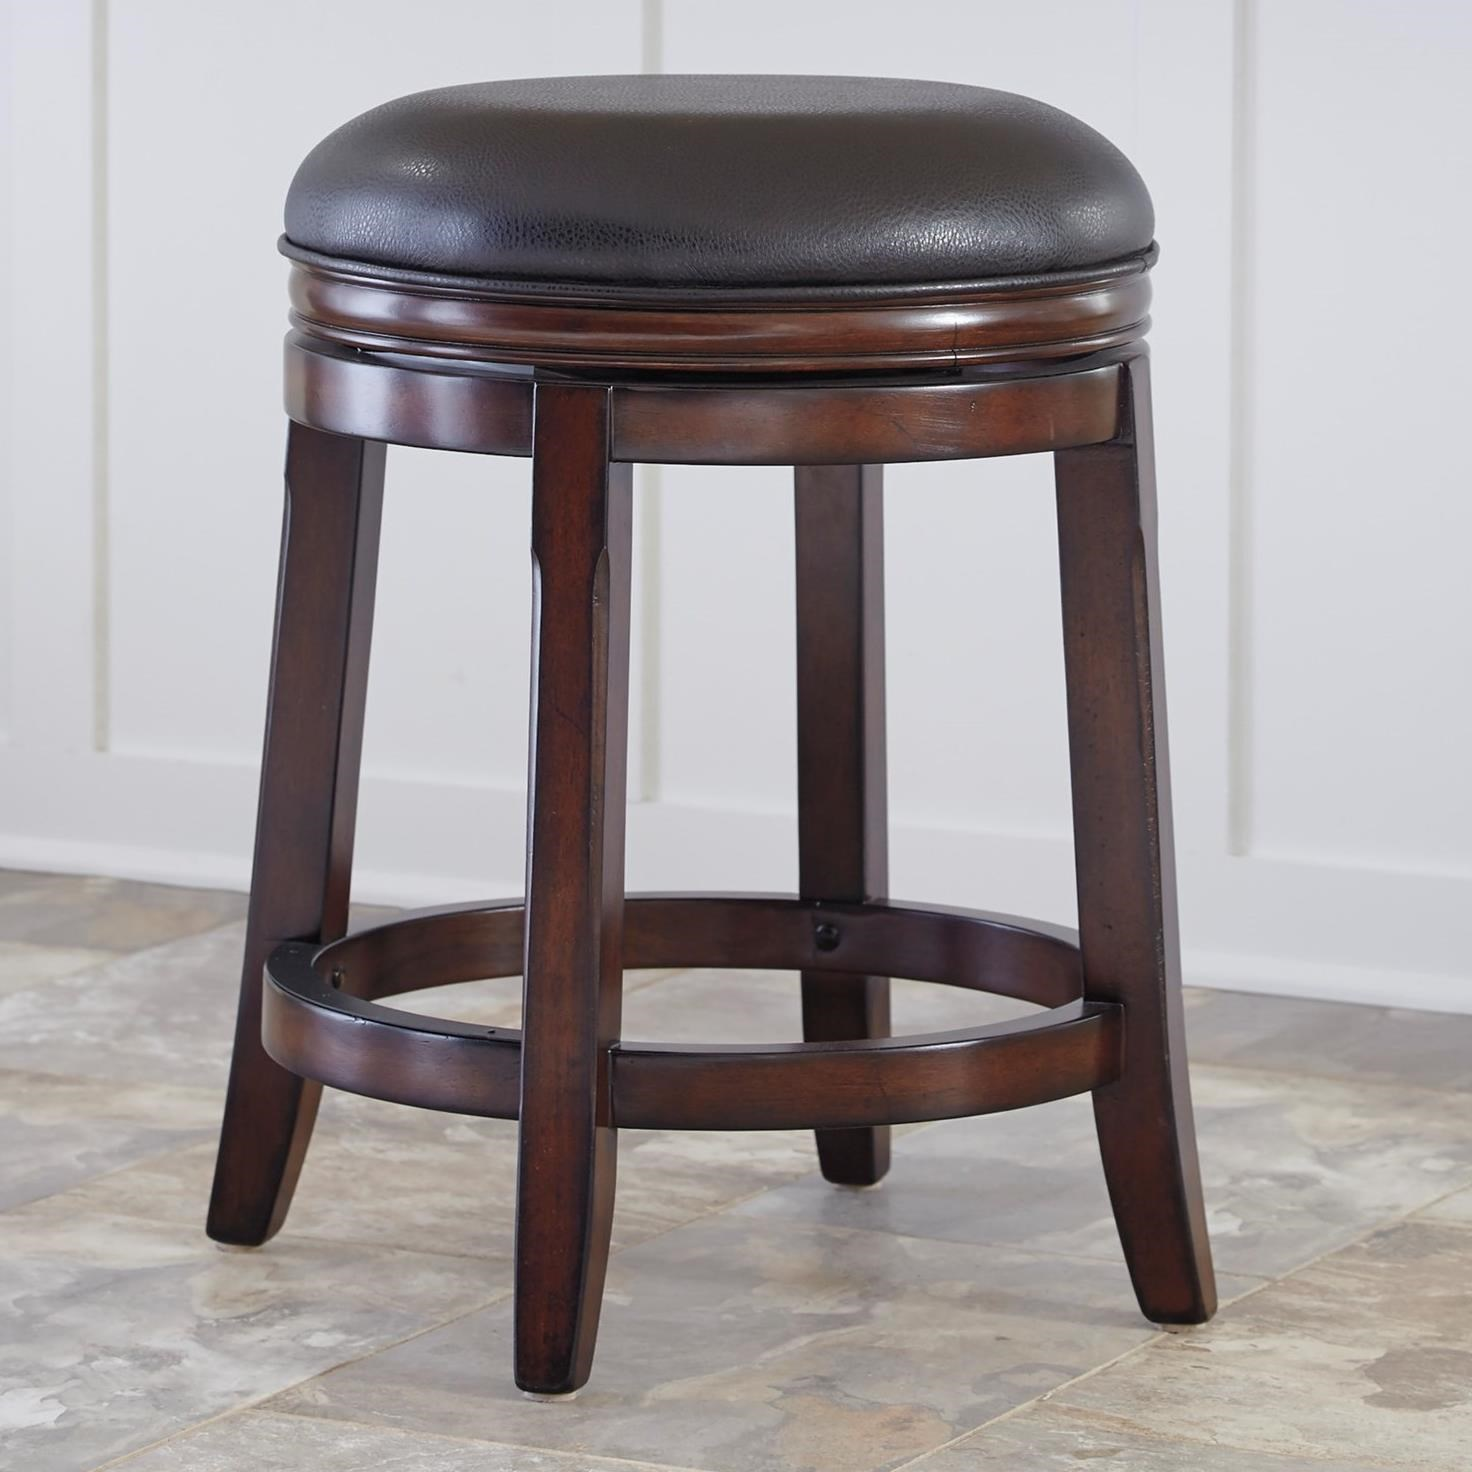 Ashley Furniture Porter D697 324 Upholstered Swivel Stool  : products2Fashleyfurniture2Fcolor2Fporterd697 324 b1 from www.northeastfactorydirect.com size 1472 x 1472 jpeg 187kB